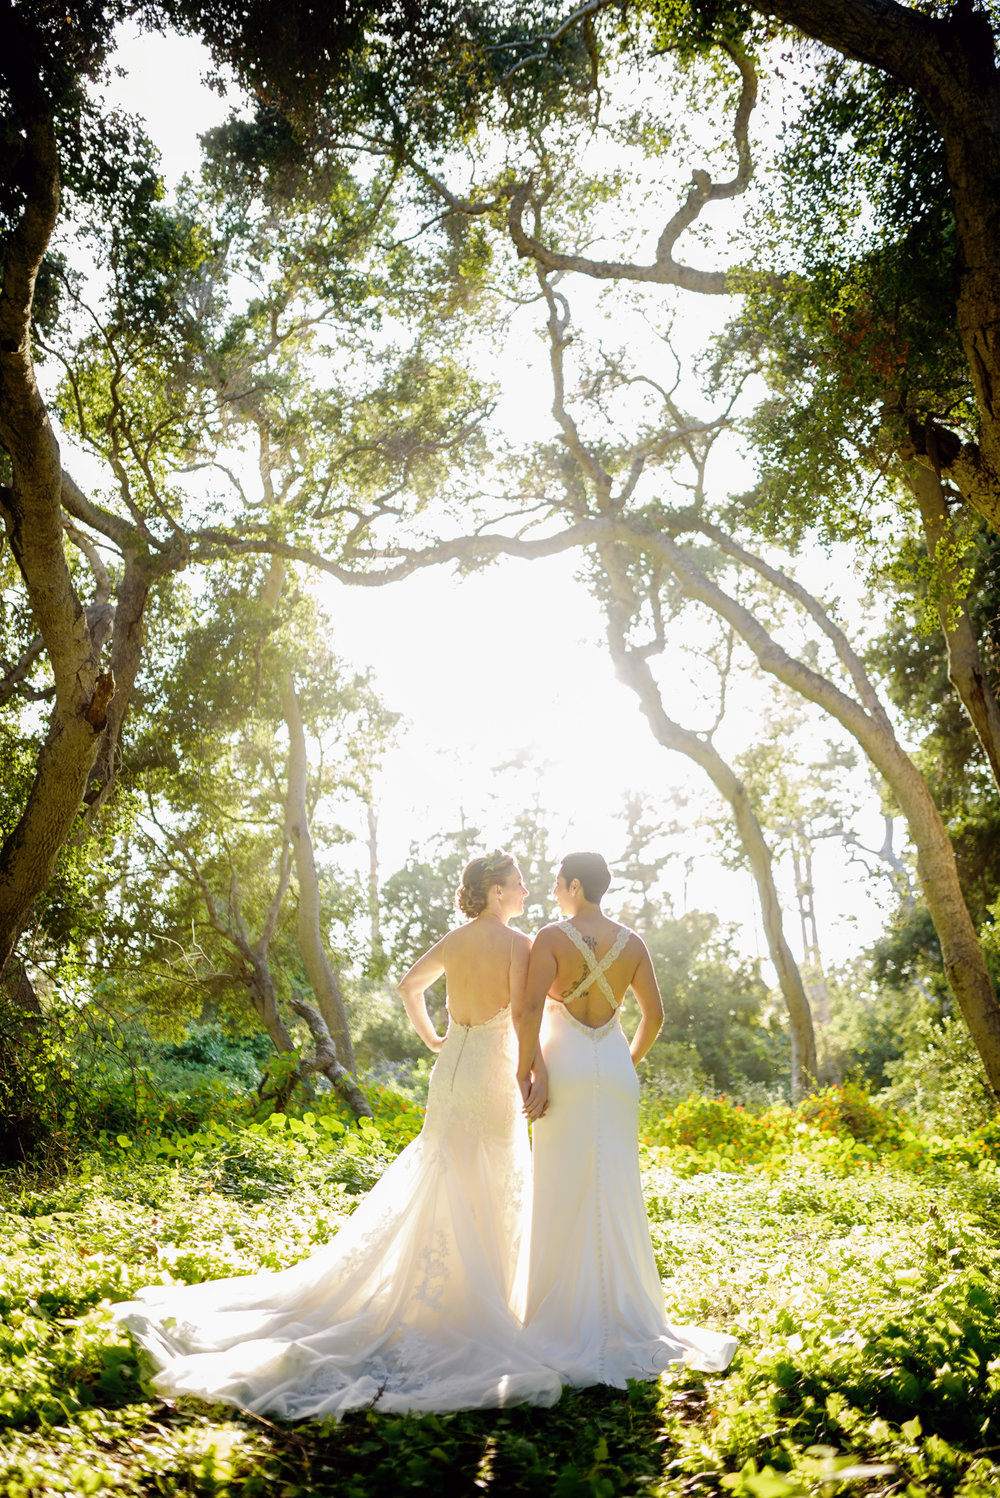 www.santabarbarawedding.com | f27 Photography | Ashley Gelfound Weddings & Events | Brides